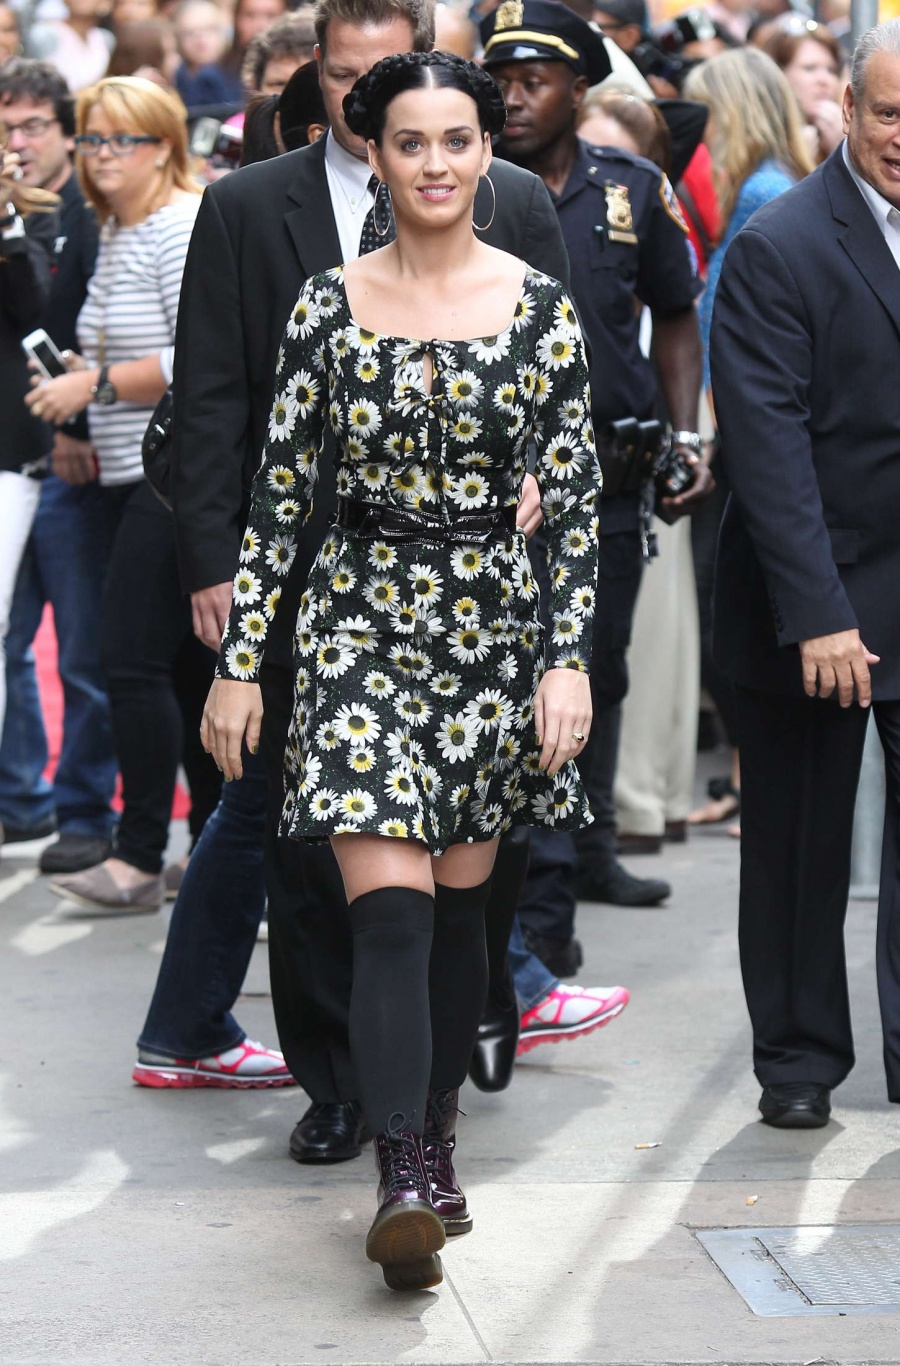 Katy-Perry-Comes-Over-Good-Morning-America